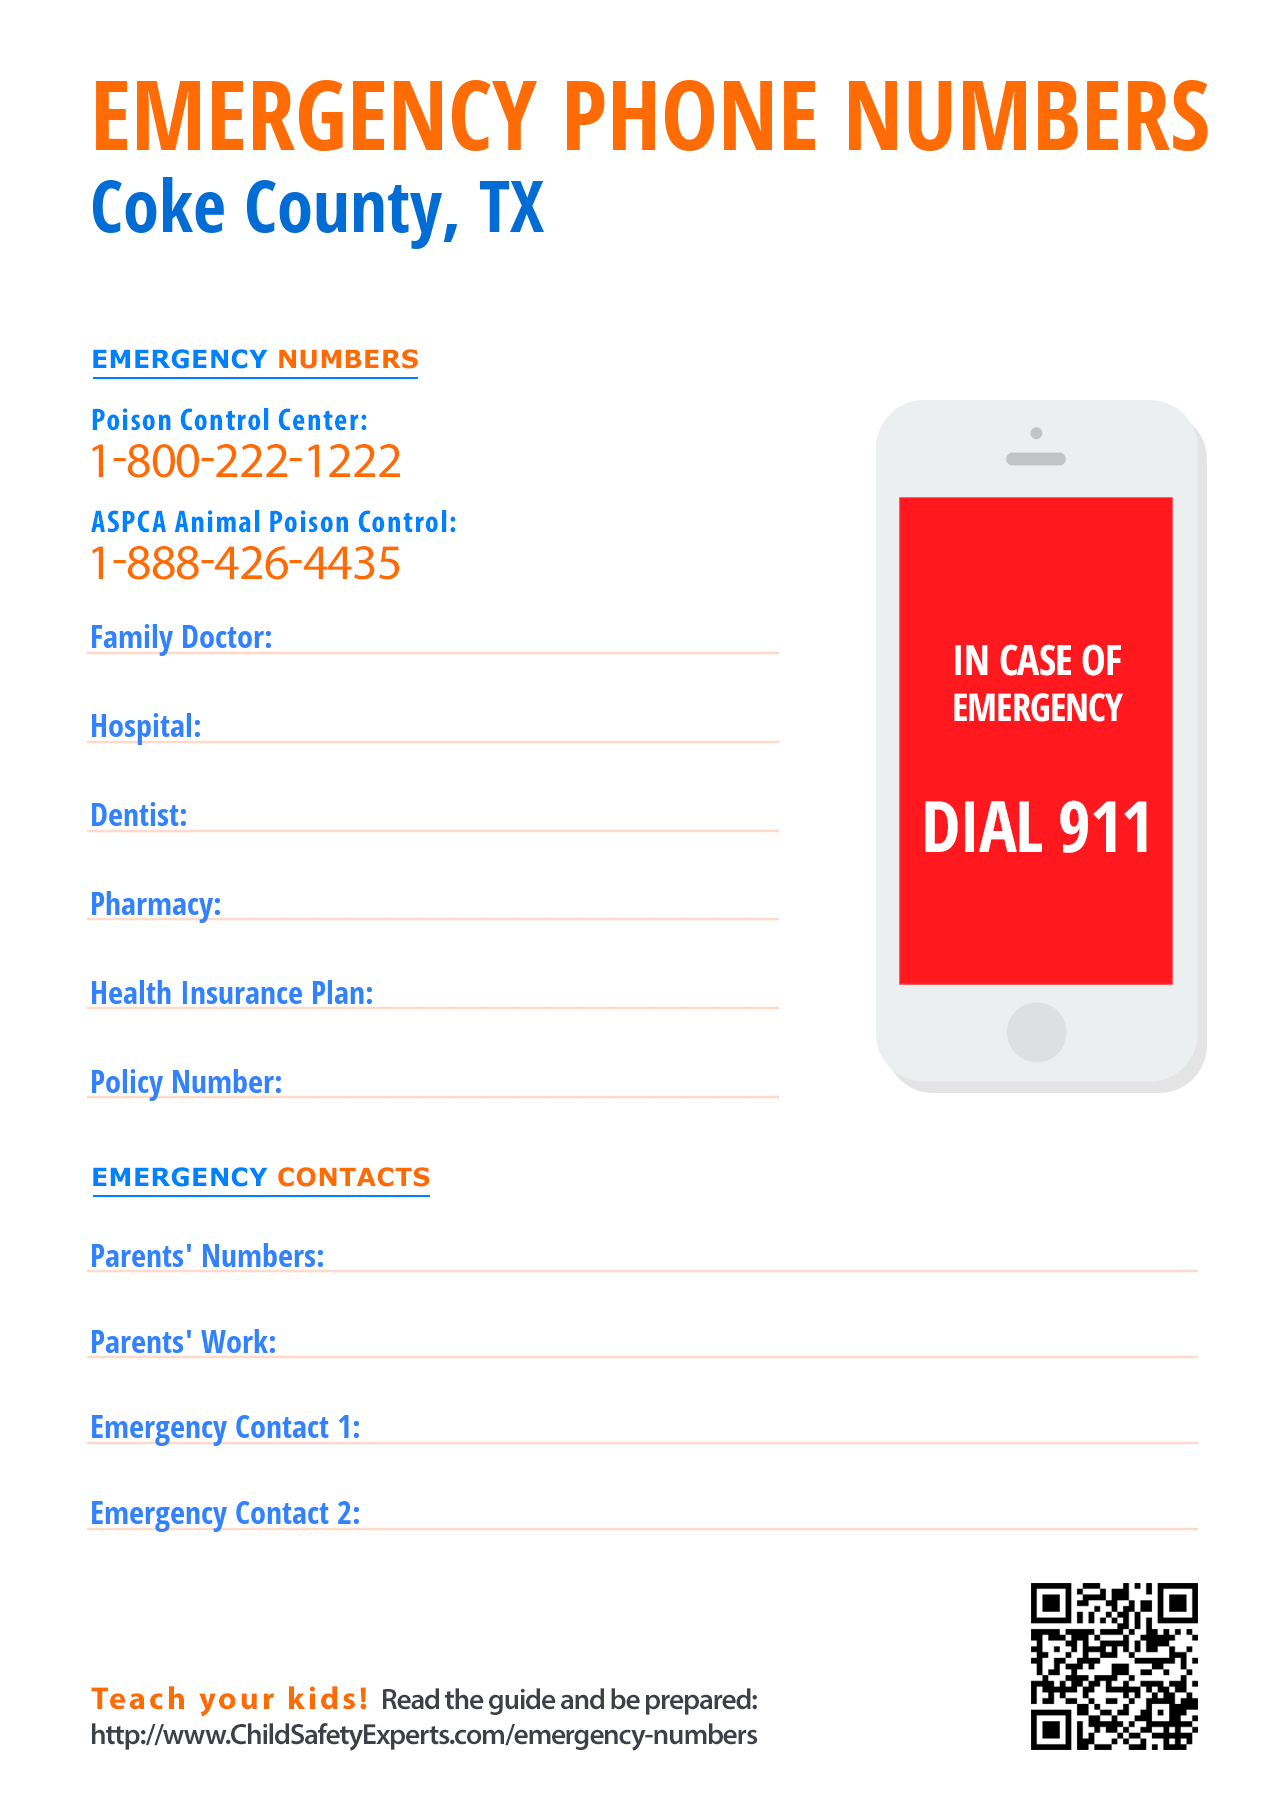 Important emergency phone numbers in Coke County, Texas